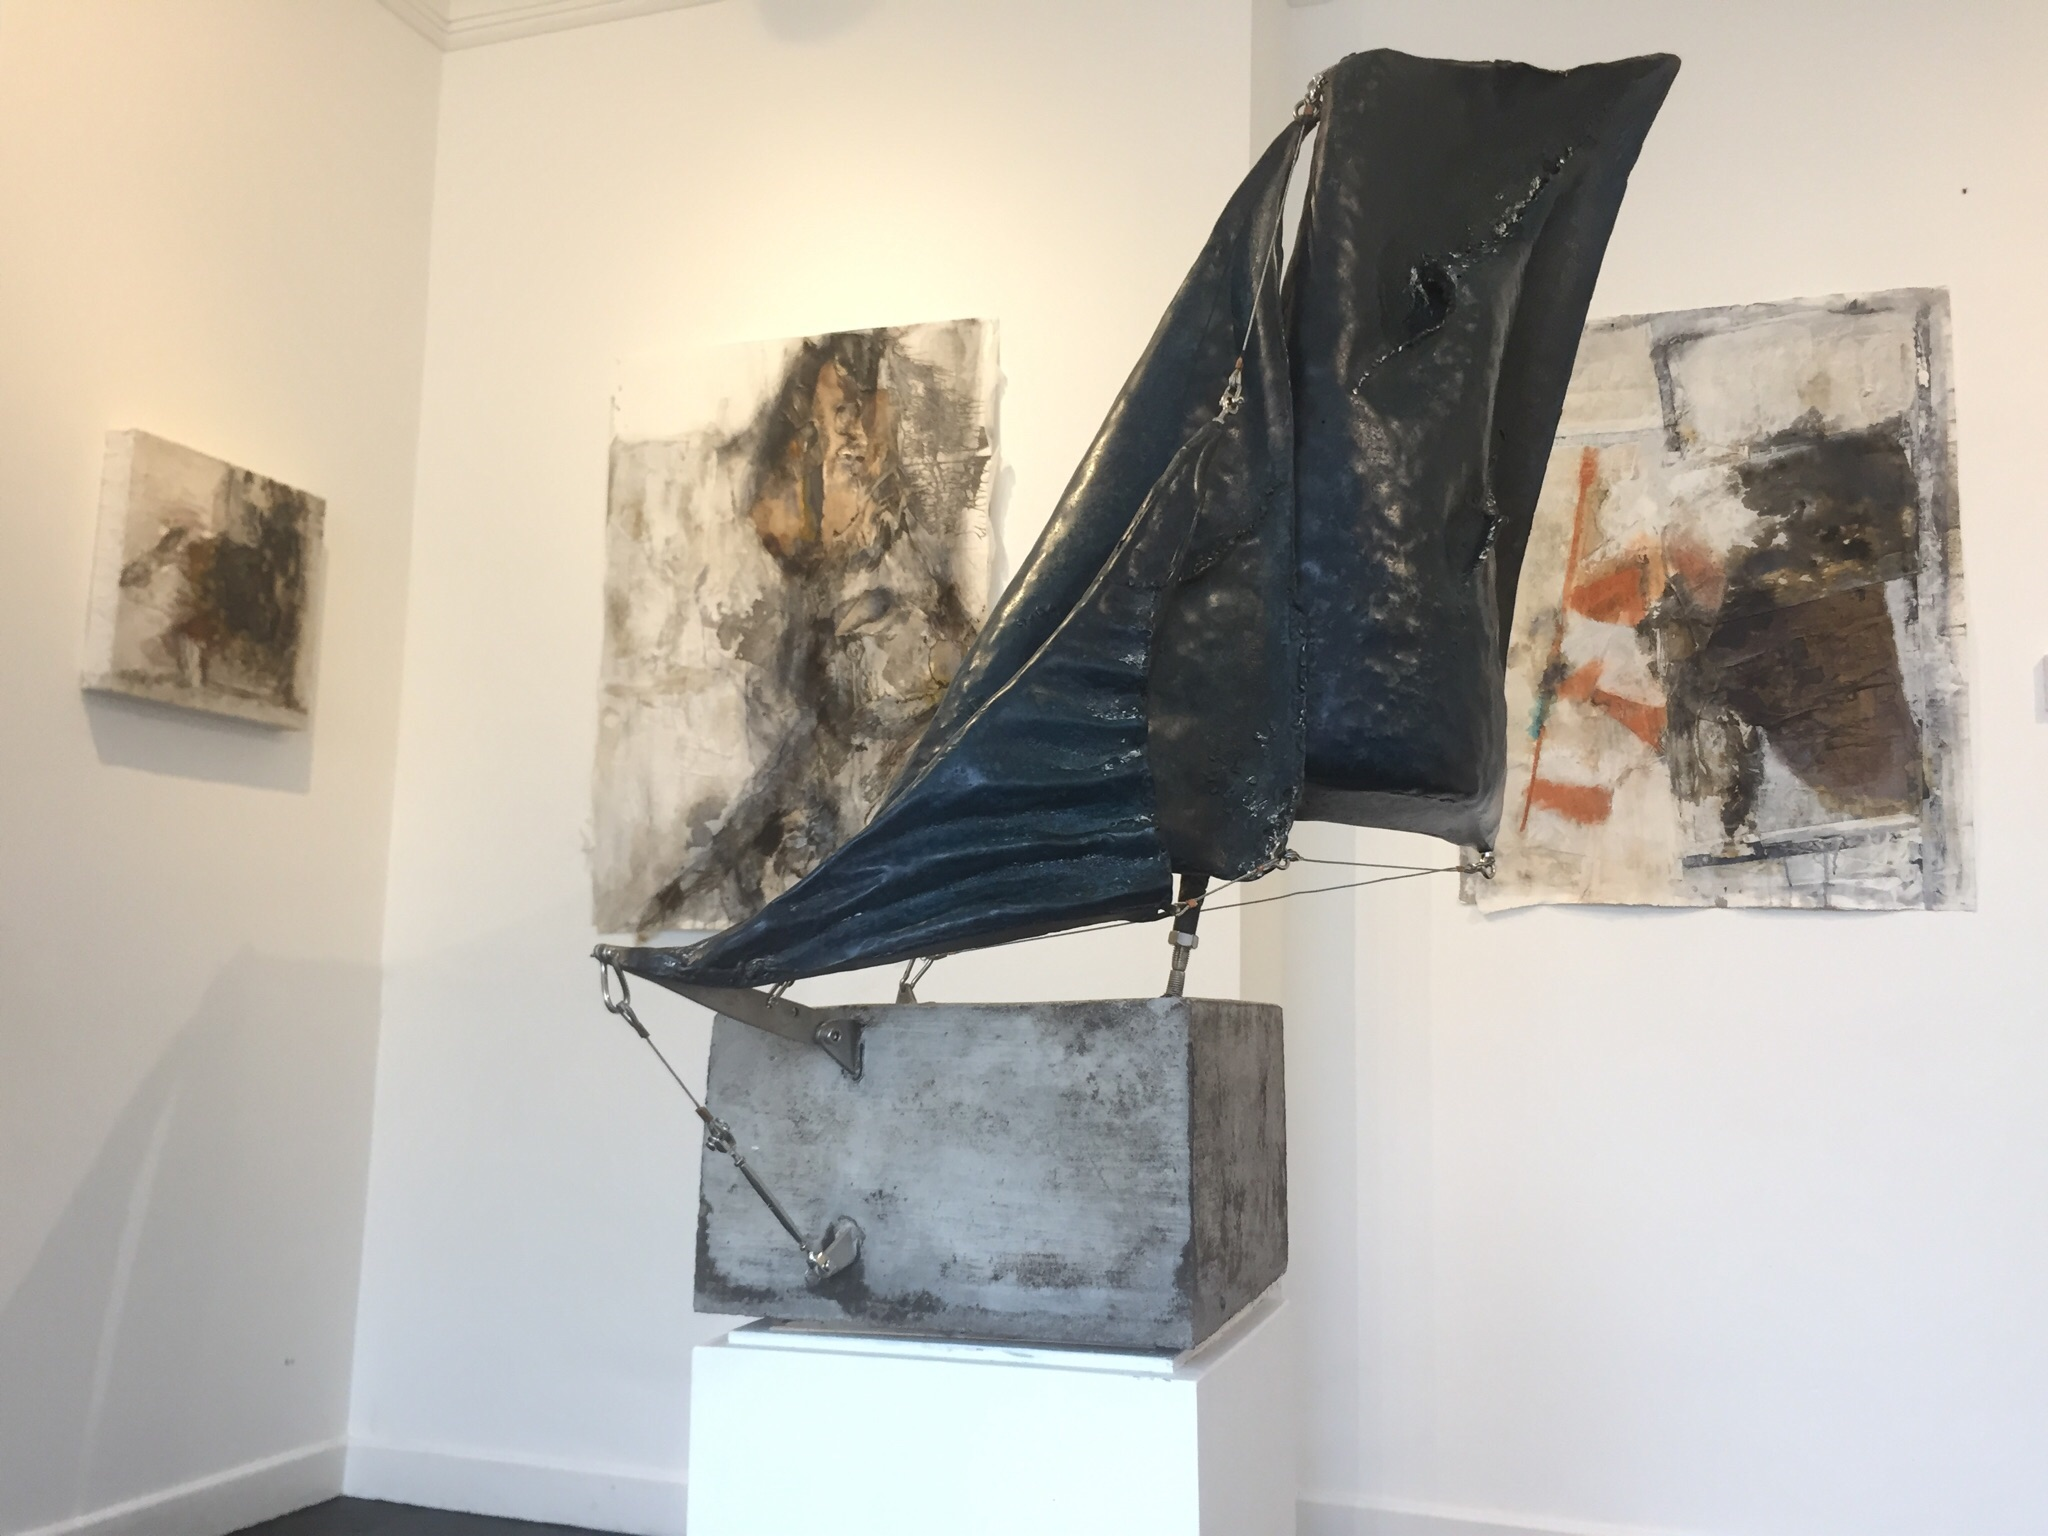 An Sgoth Eireanach II (The Irish Skiff), bronze, stainless steel and concrete.  A three-part composition of sail elements, pivoted on a single point, using rigging components and tensile structural members.